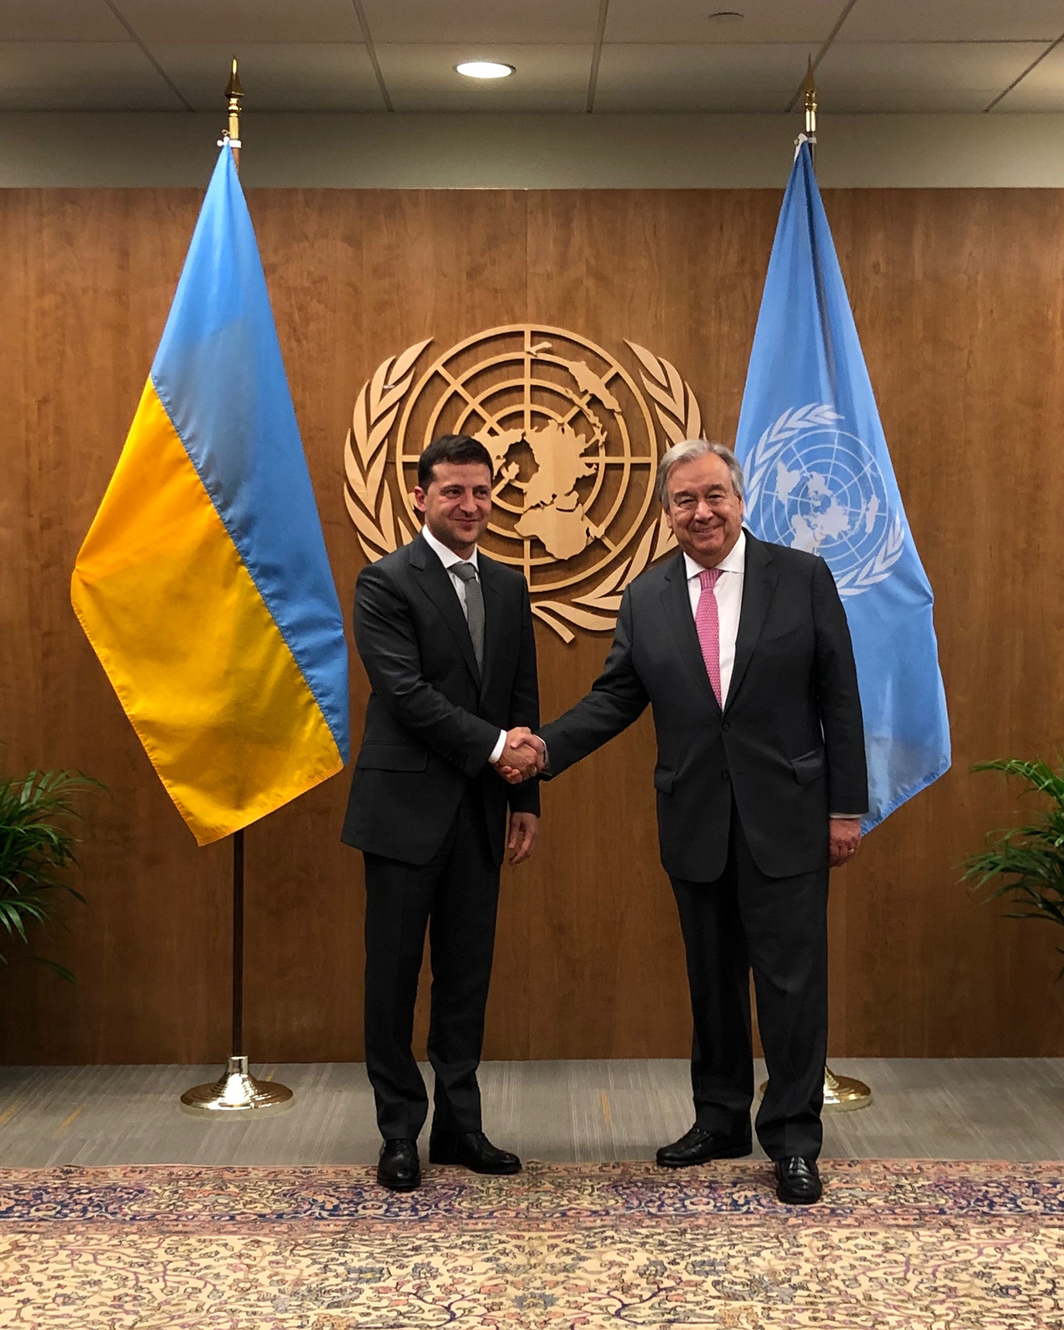 Ukrainian president Volodymyr Zelensky and Secretary-General António Guterres. Photo: Mary Ellen Carroll.